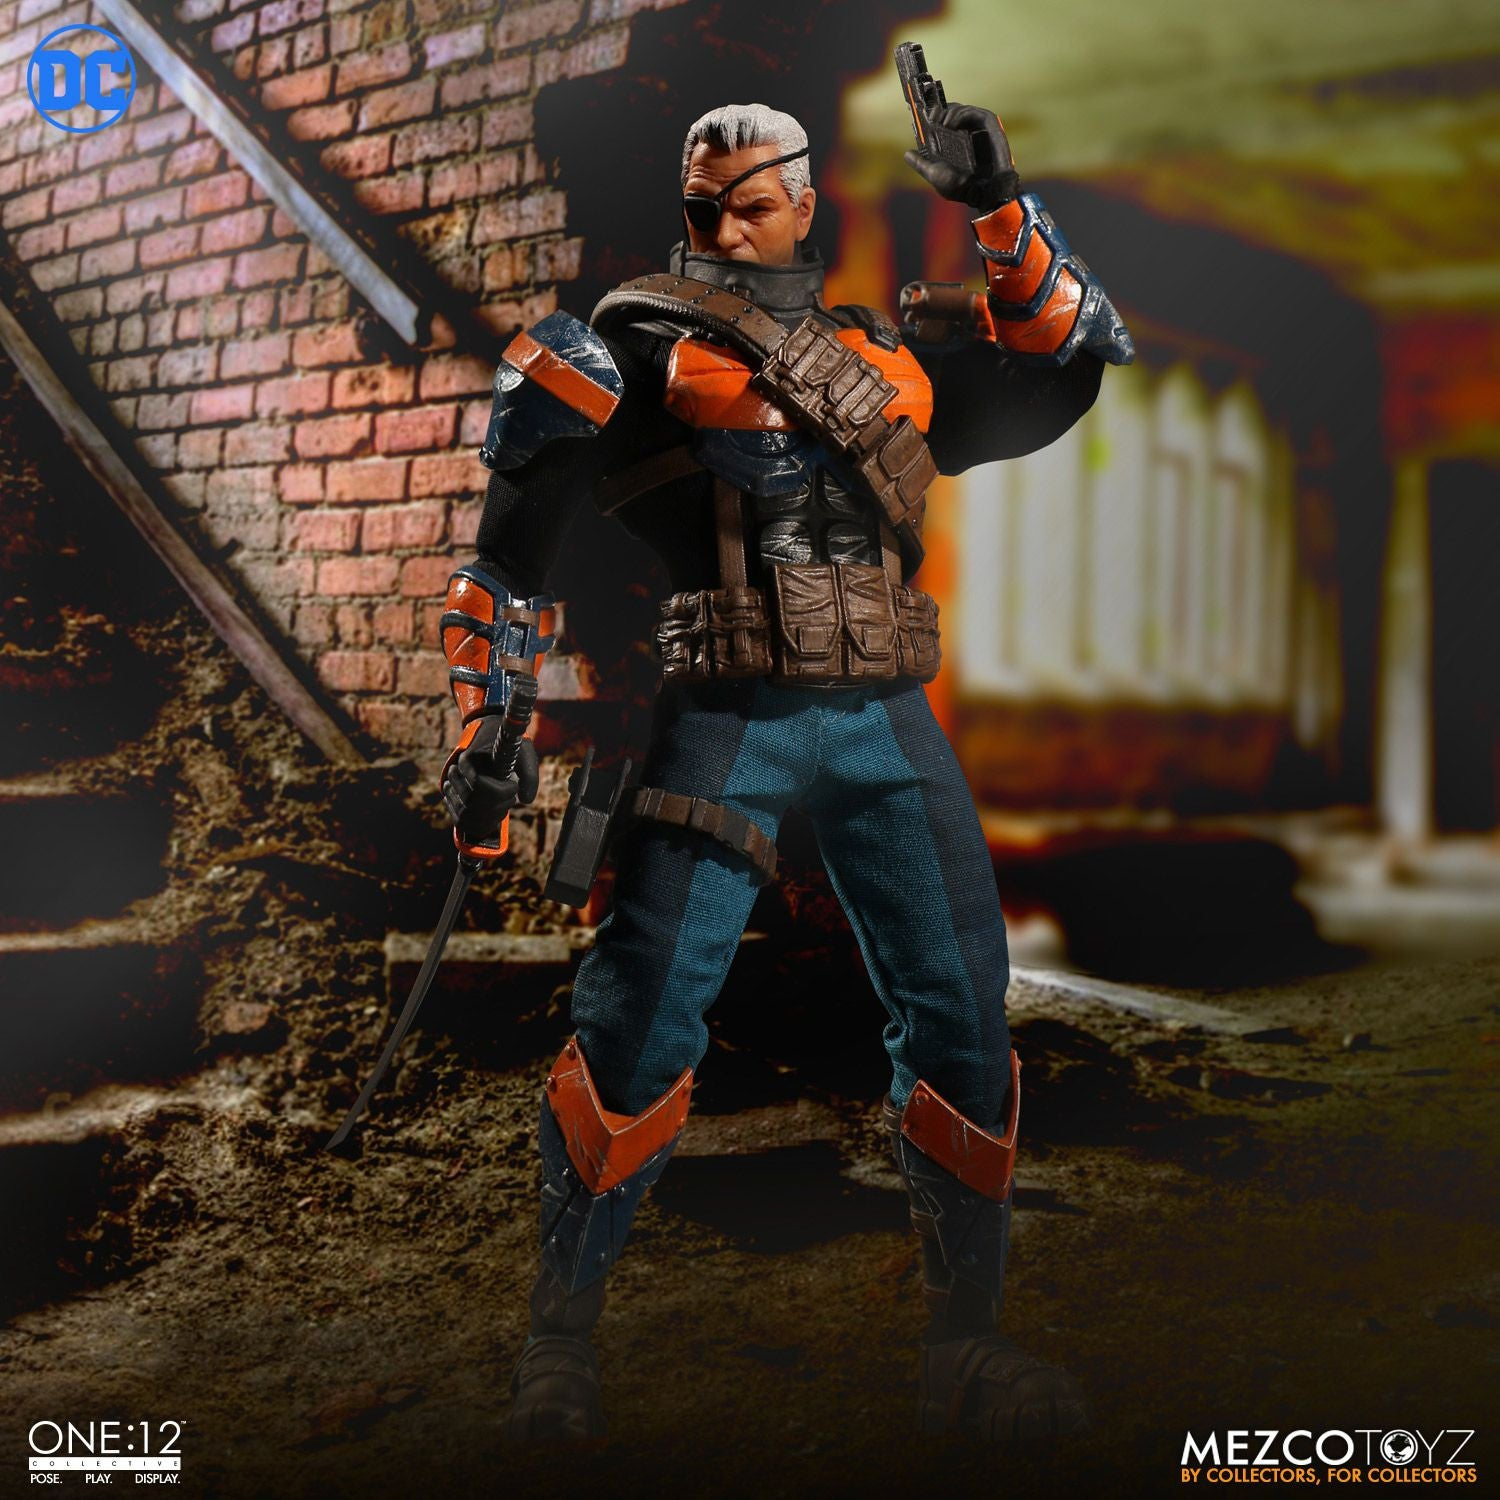 Mezco - One:12 Collective - Deathstroke - Marvelous Toys - 8